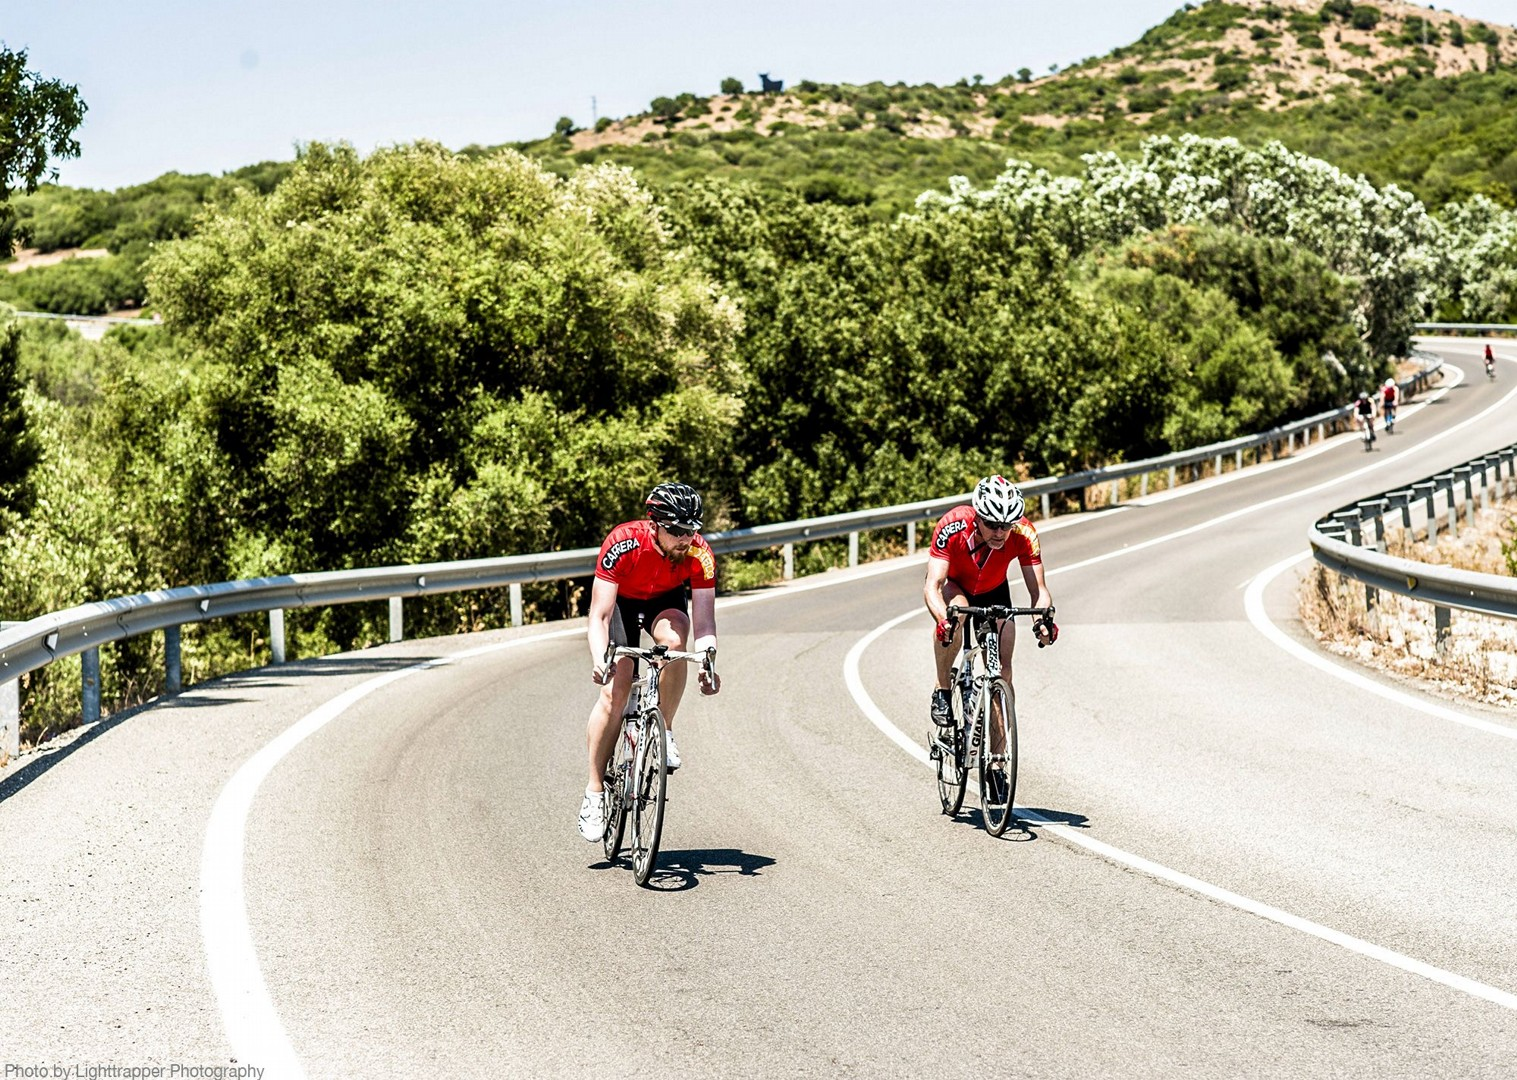 road-cycling-self-guided-tour-west-andalucia-sierras-skedaddle.jpg - Southern Spain - Andalucia - Los Pueblos Blancos - Self-Guided Road Cycling Holiday - Road Cycling